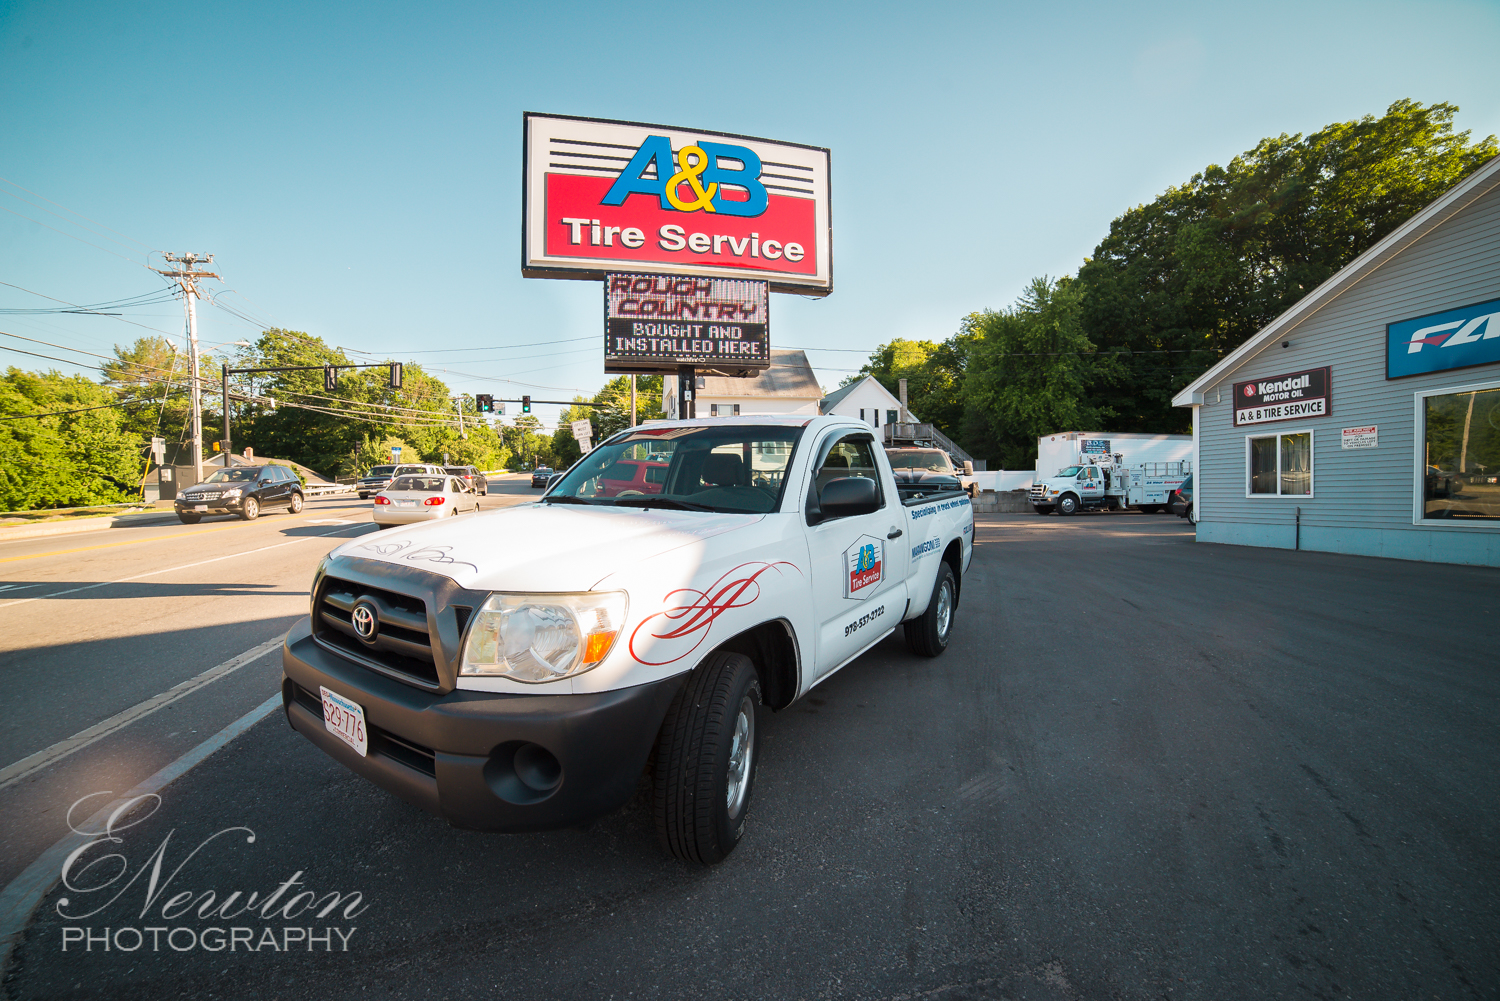 Visit A&B Tire Service in Leominster, MA for all your Tire, Auto Repair, and Commercial Truck Needs